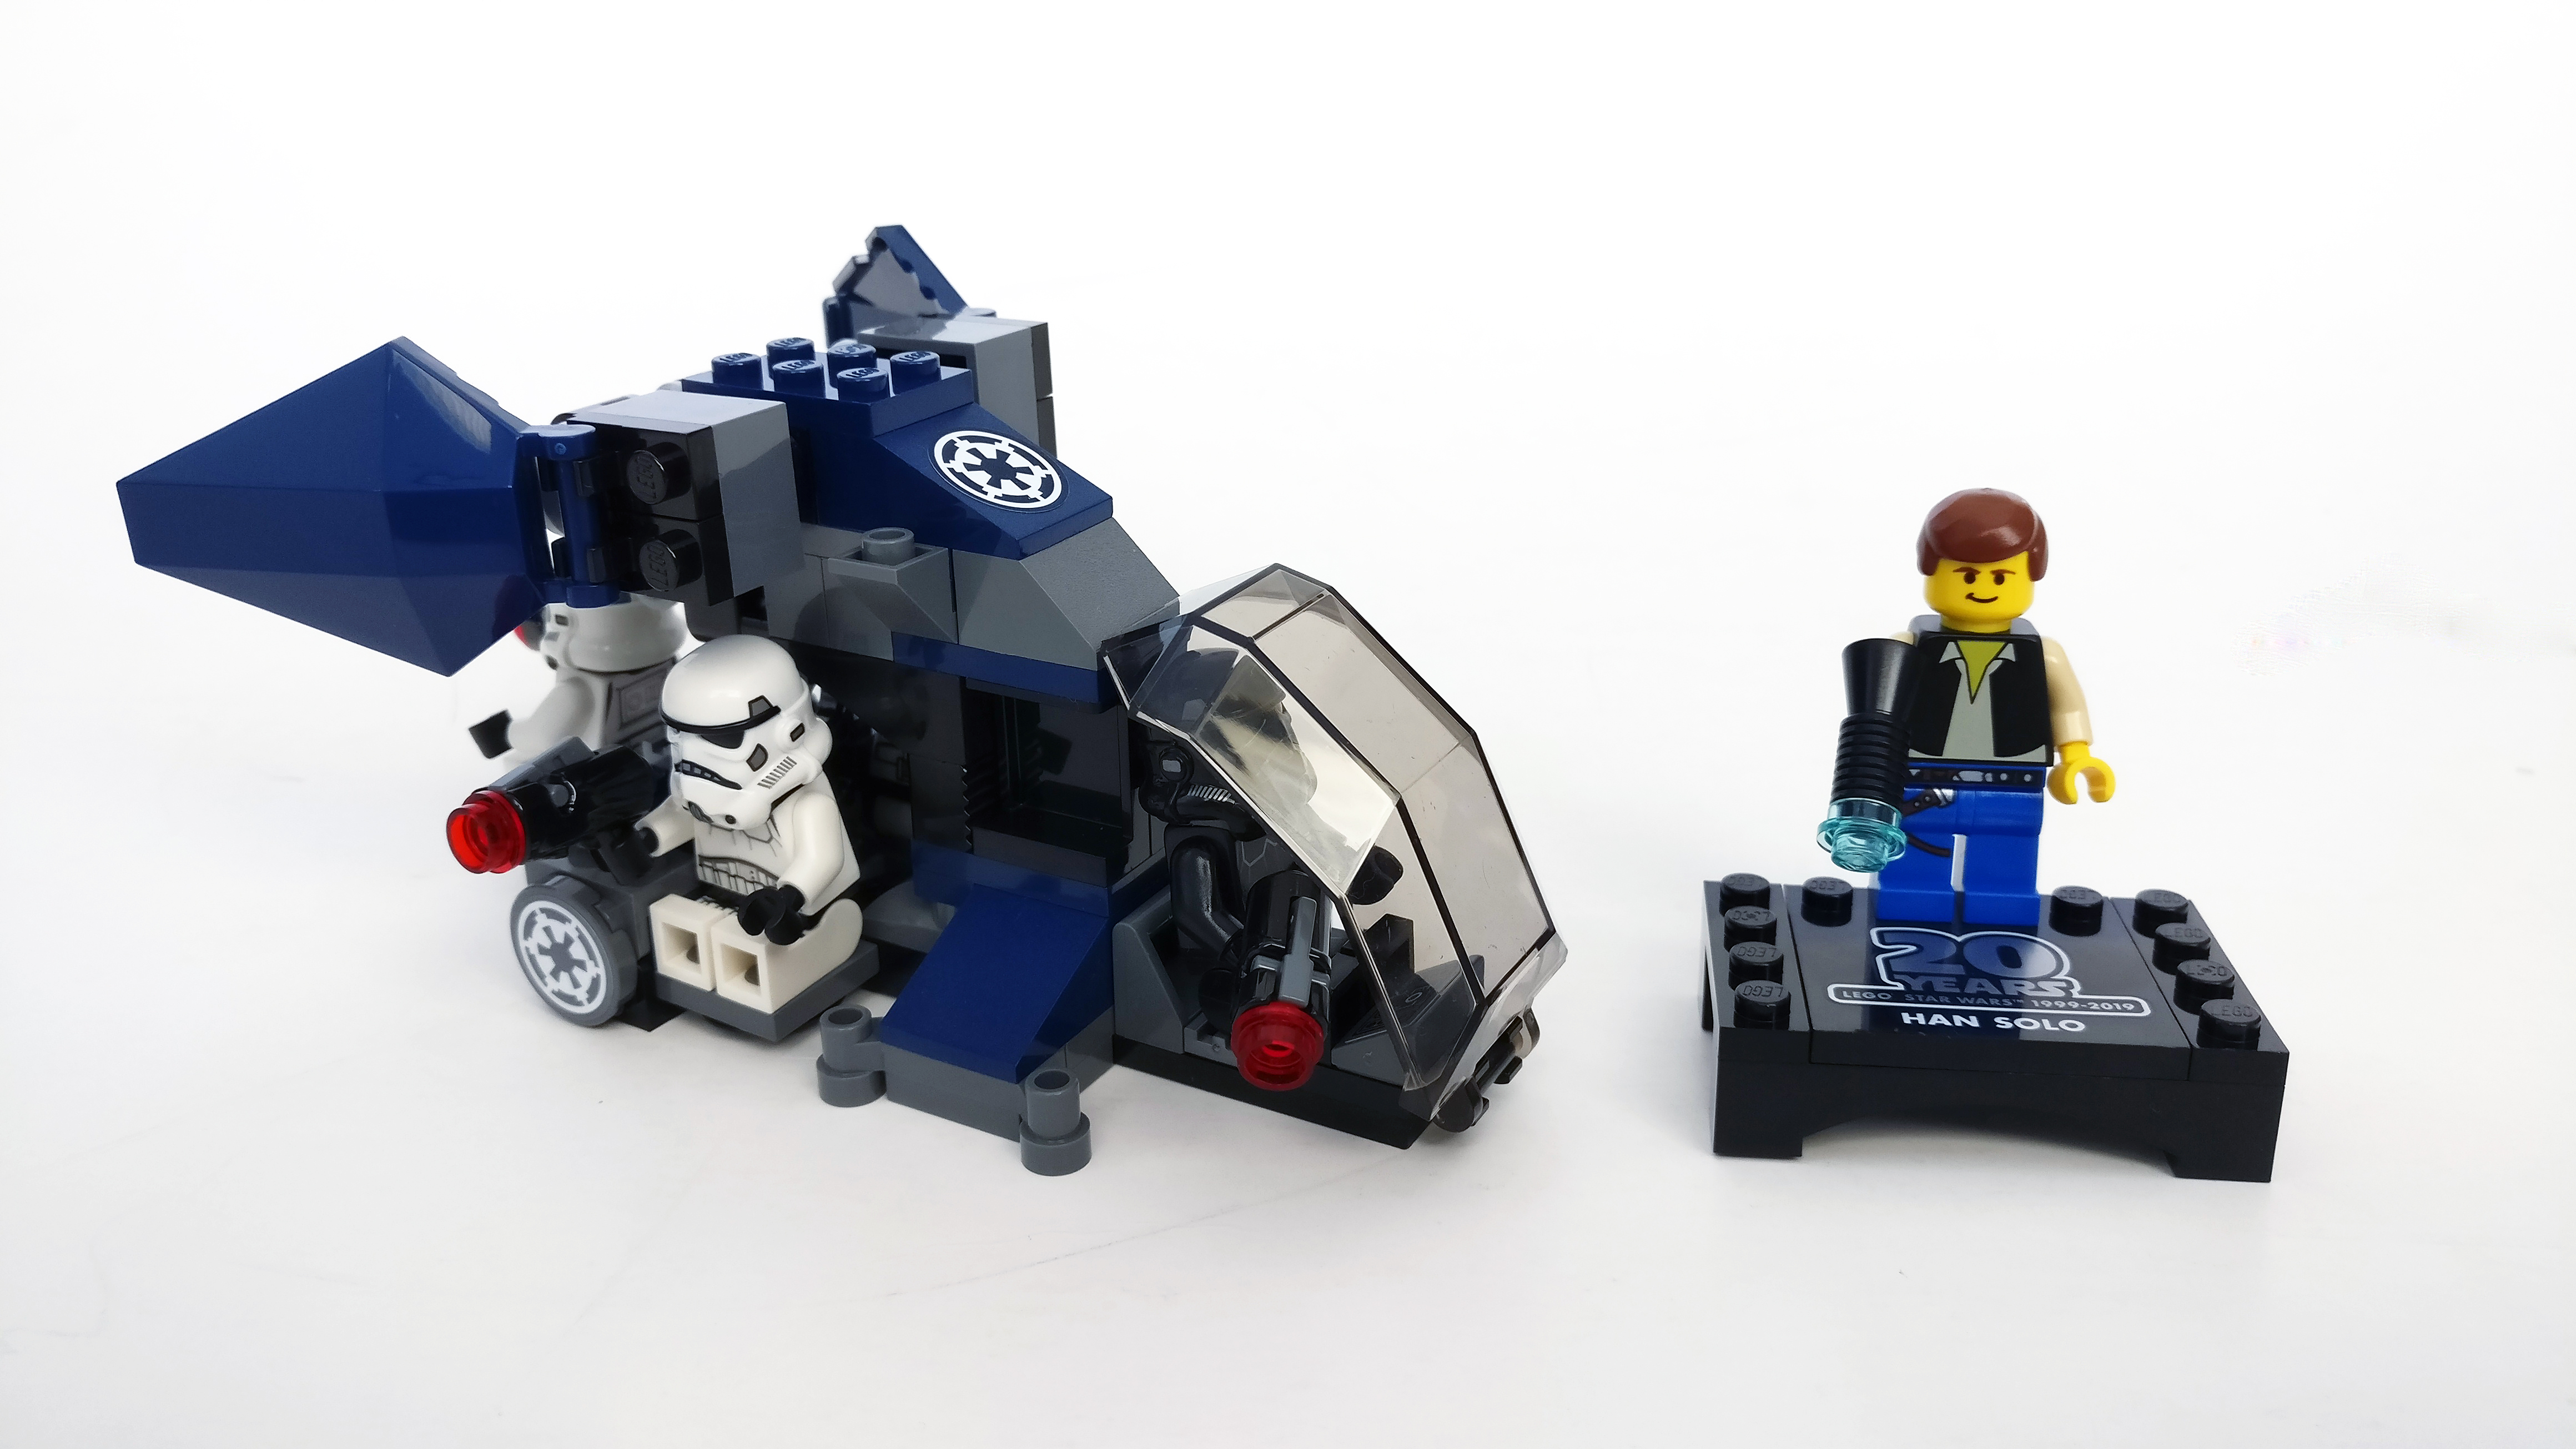 20th Anniversary 75262 Lego Star Wars Imperial Dropship /& Pilot W//Instructions